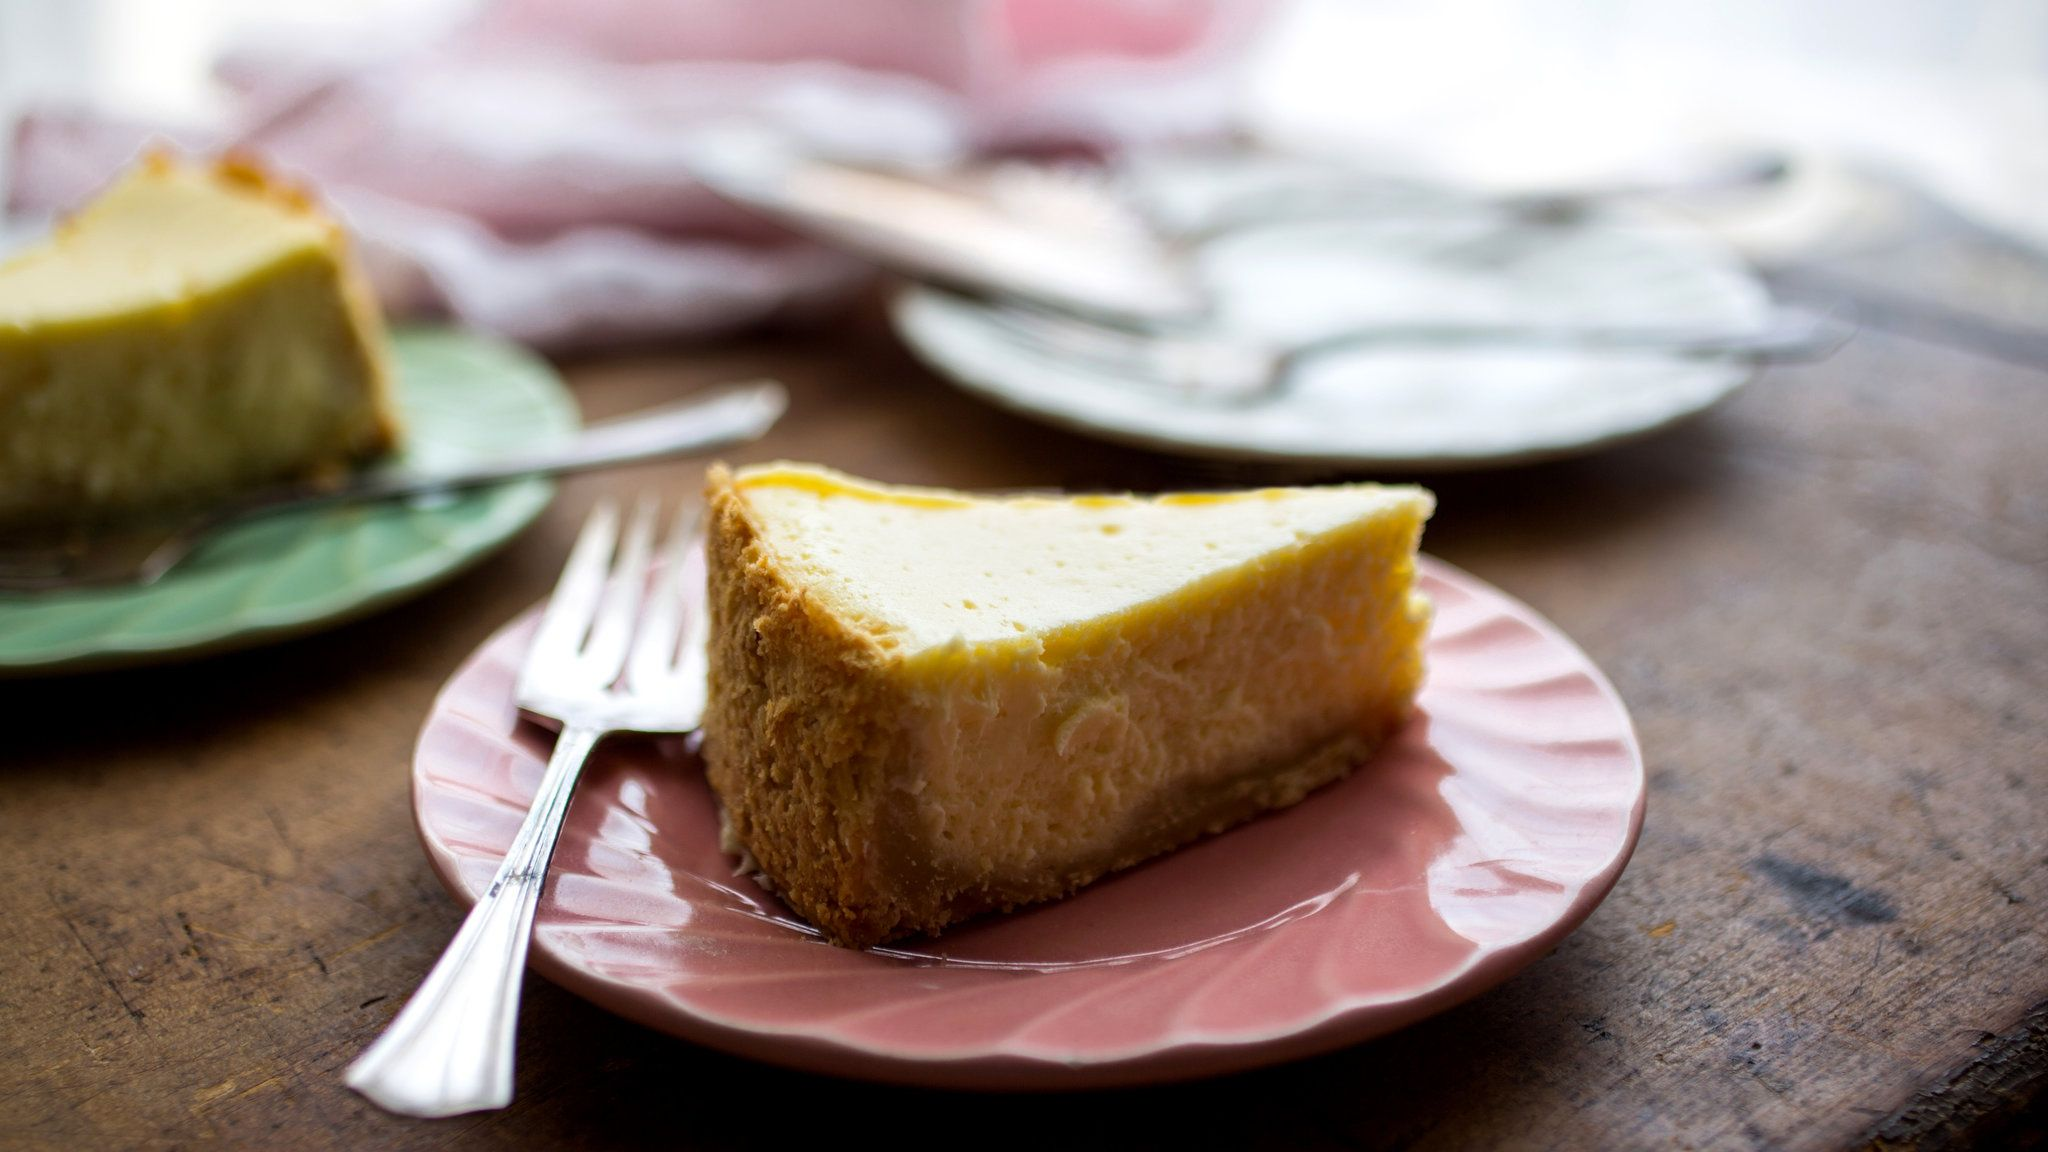 Deluxe Cheesecake Recipe Recipe Cheesecake Recipes Thanksgiving Food Desserts Desserts